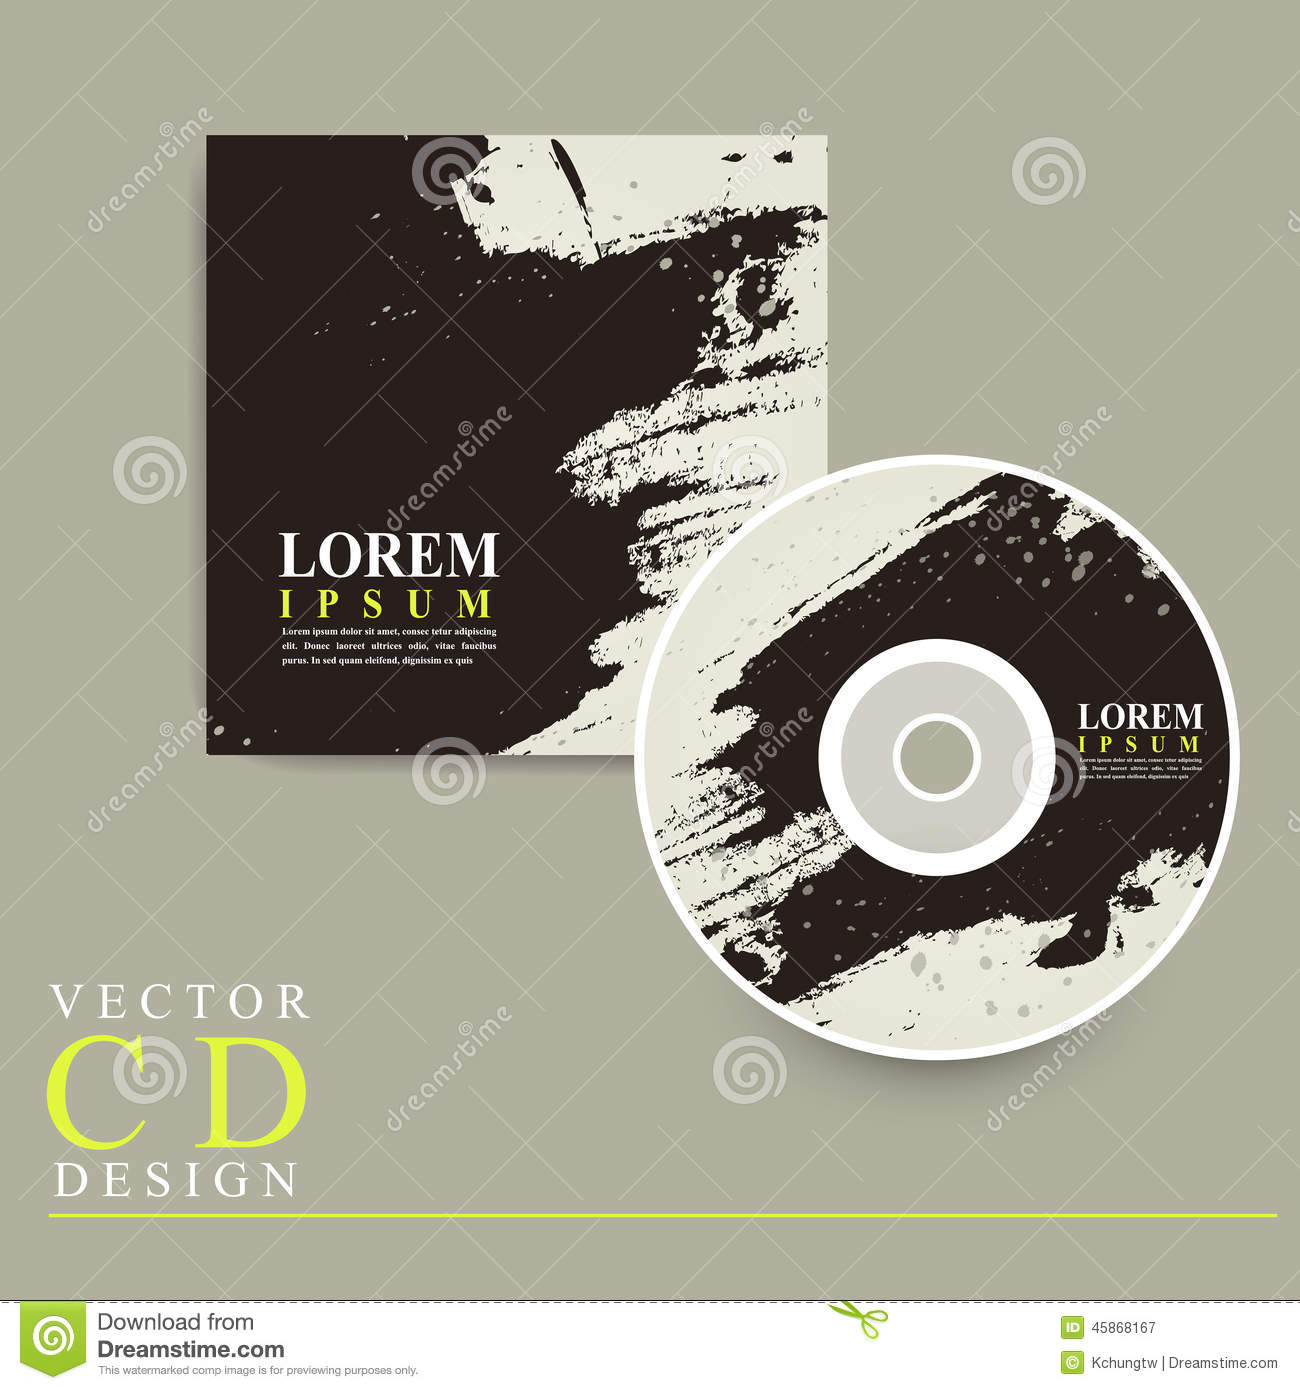 Abstract Chinese Calligraphy Design For Cd Cover Stock Vector